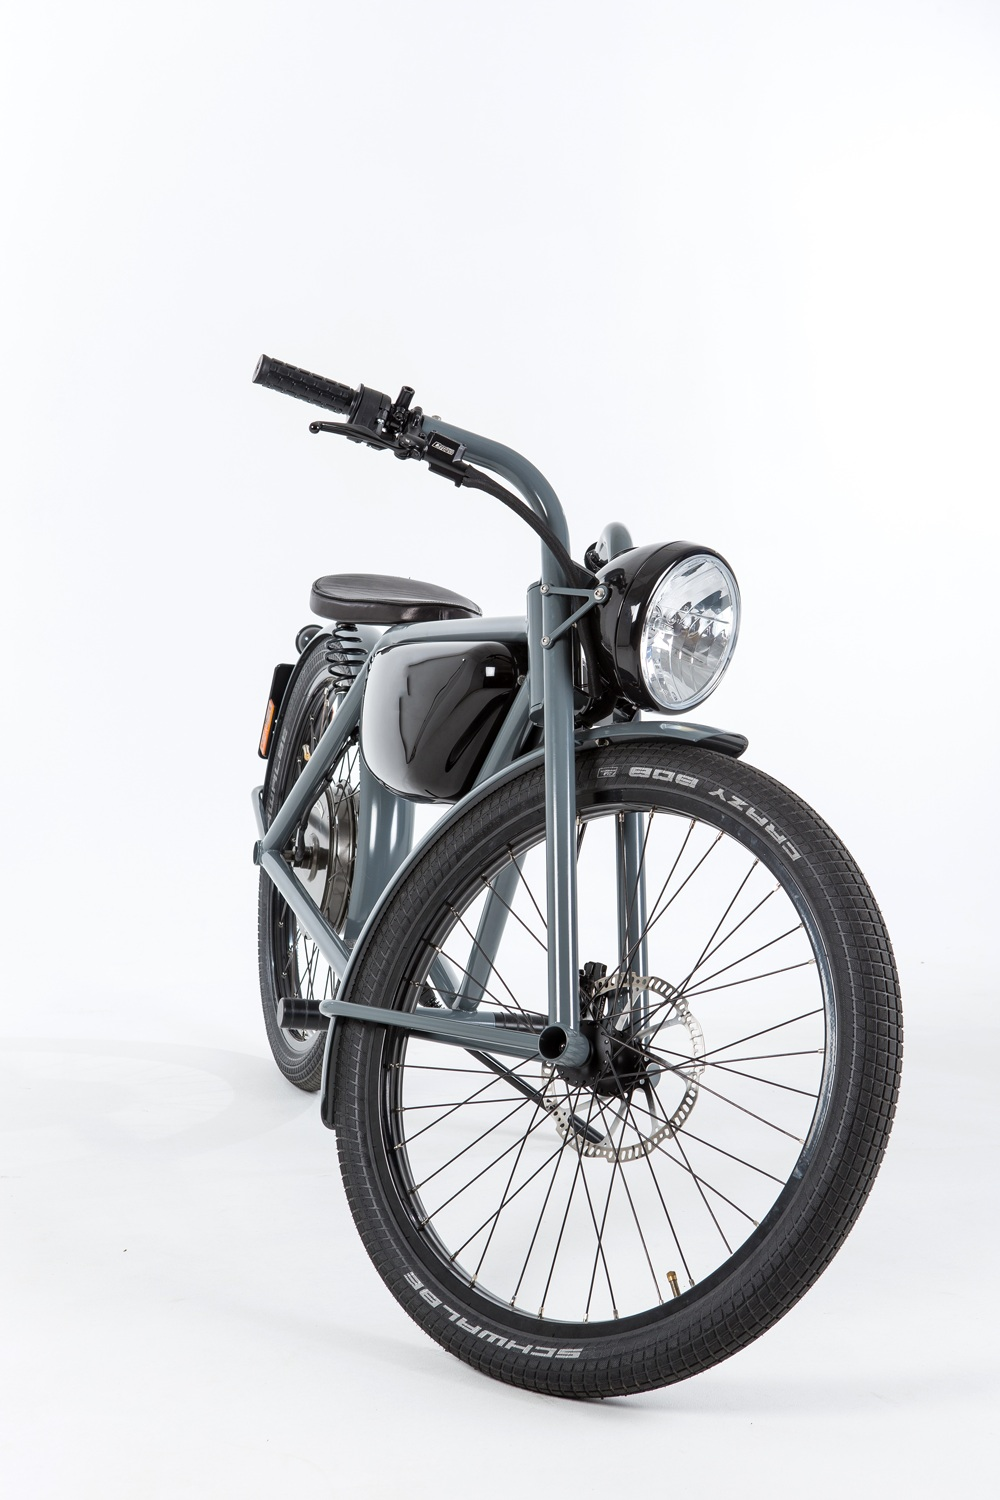 Squire Motorcycles -